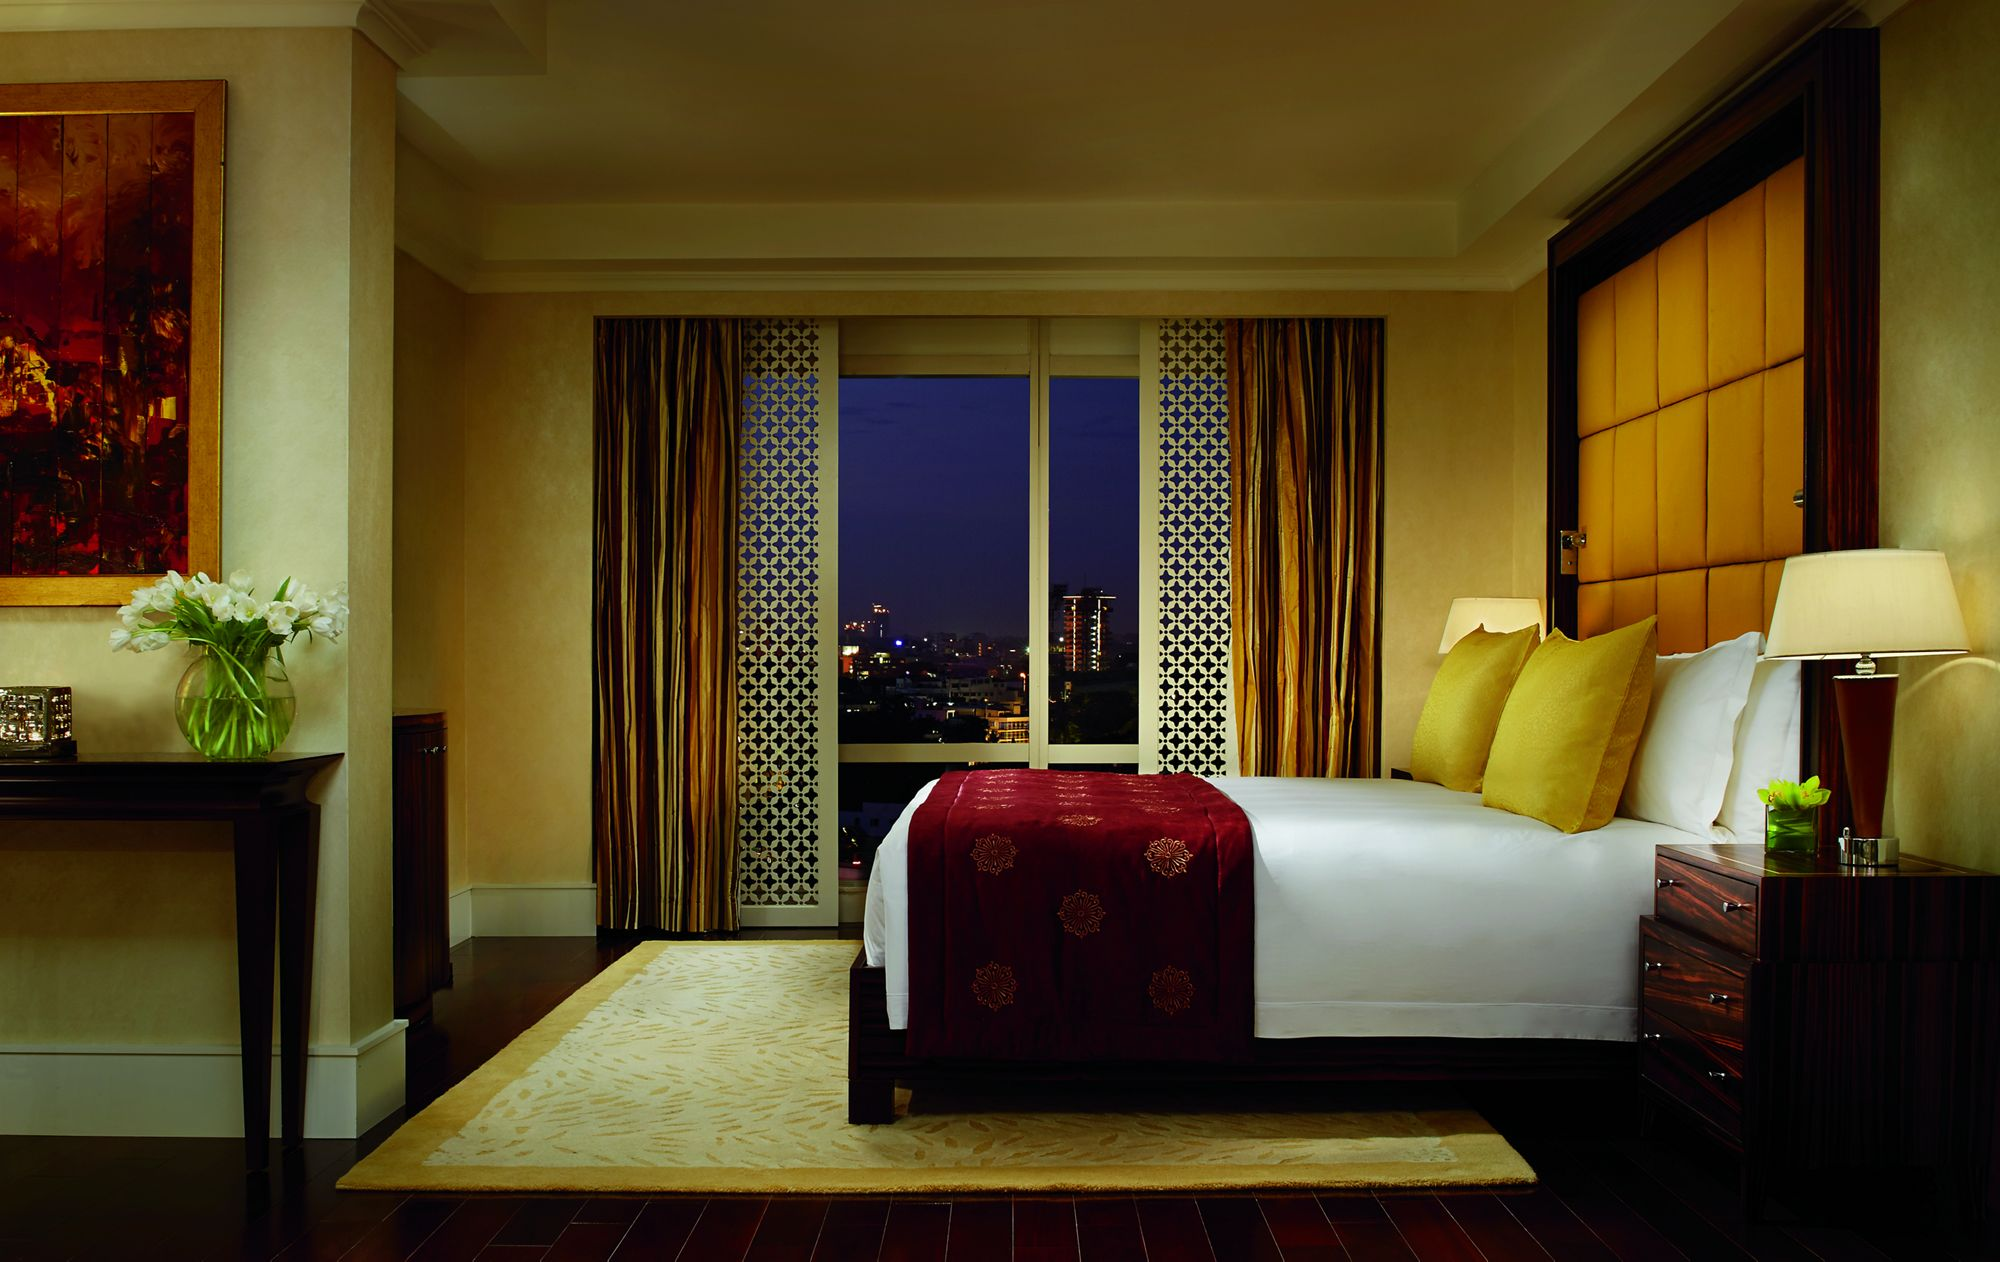 Suite bedroom with a small foyer, a king size bed and floor-to-ceiling views of the city at night